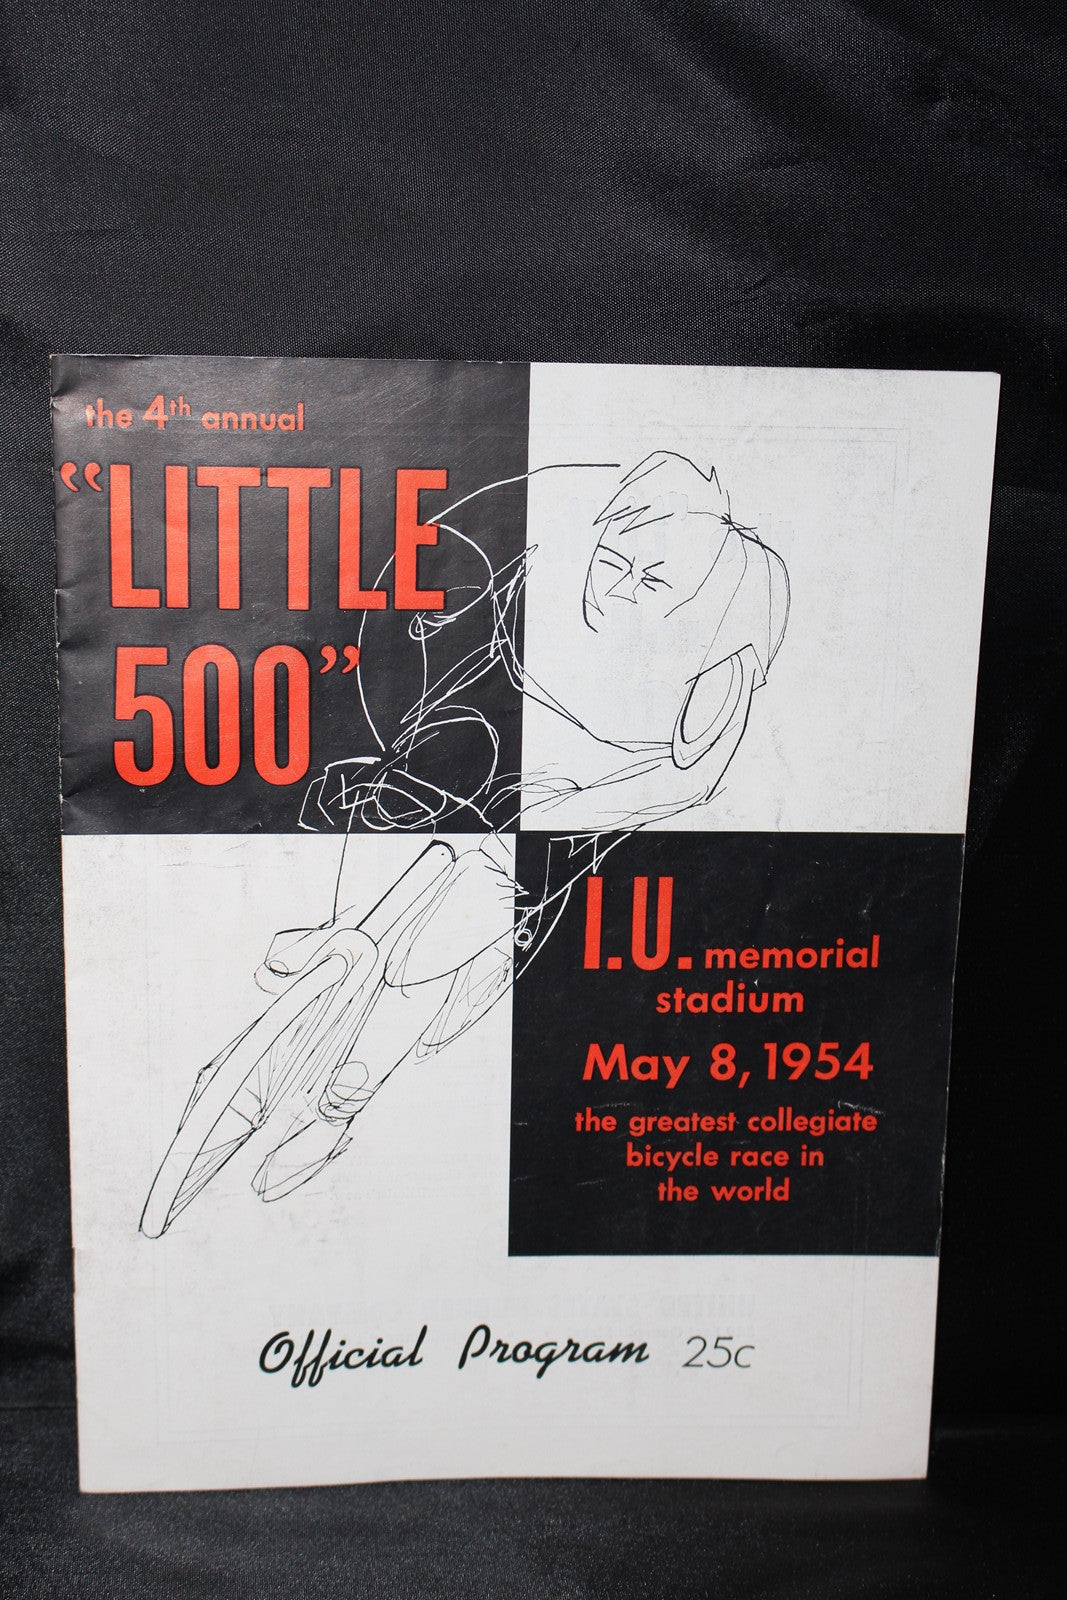 1954 Indiana University Little 500 Bicylce Race Program - Vintage Indy Sports